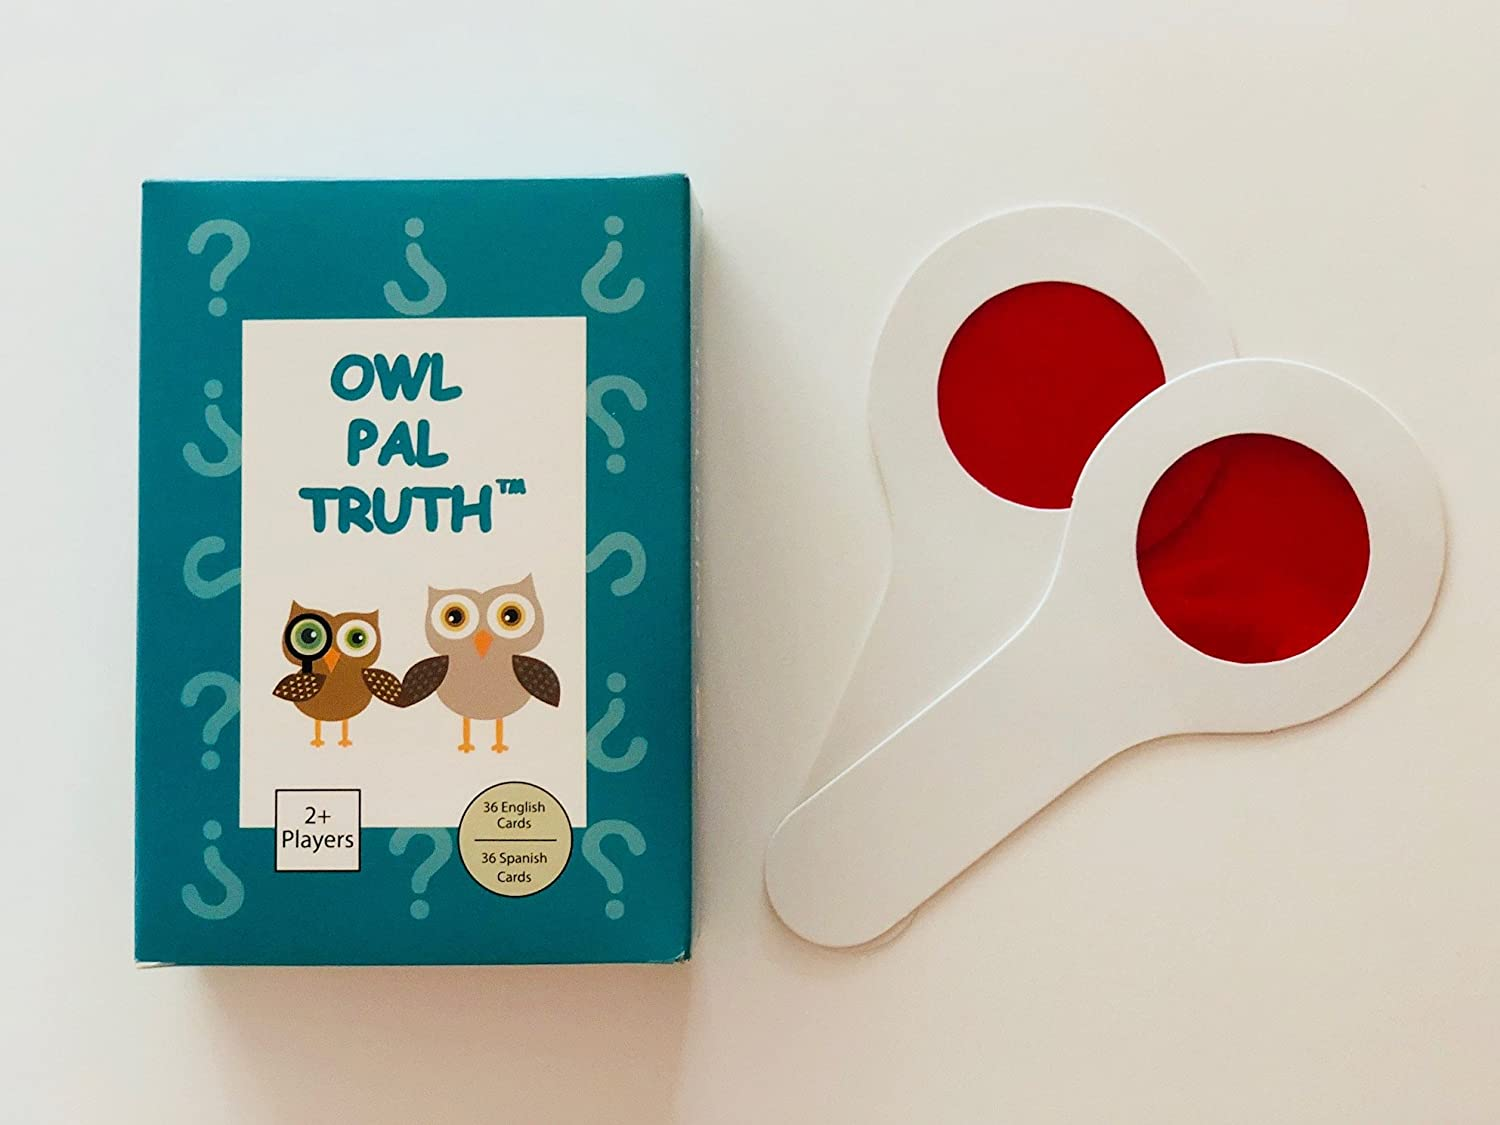 Amazon.com: Owl Pal Truth: Therapeutic Card Game for Abused Children ...